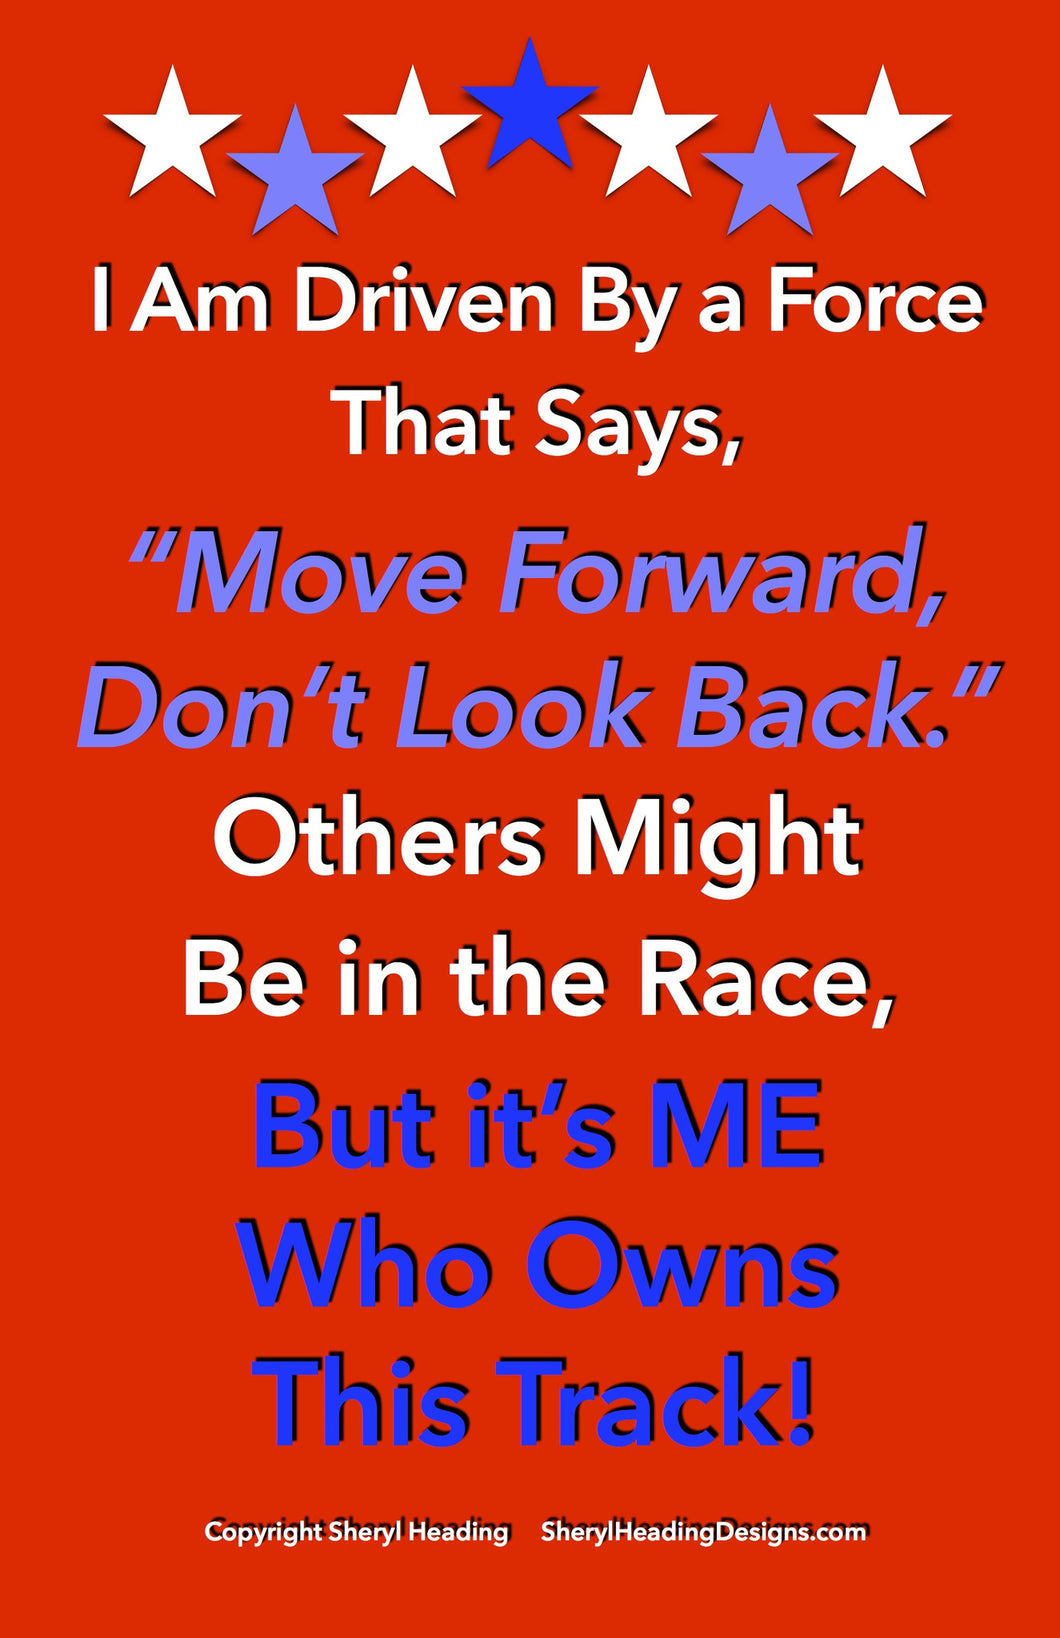 I Am Driven By A Force That Says Move Forward Don't Look Back... Poster - Sheryl Heading Designs